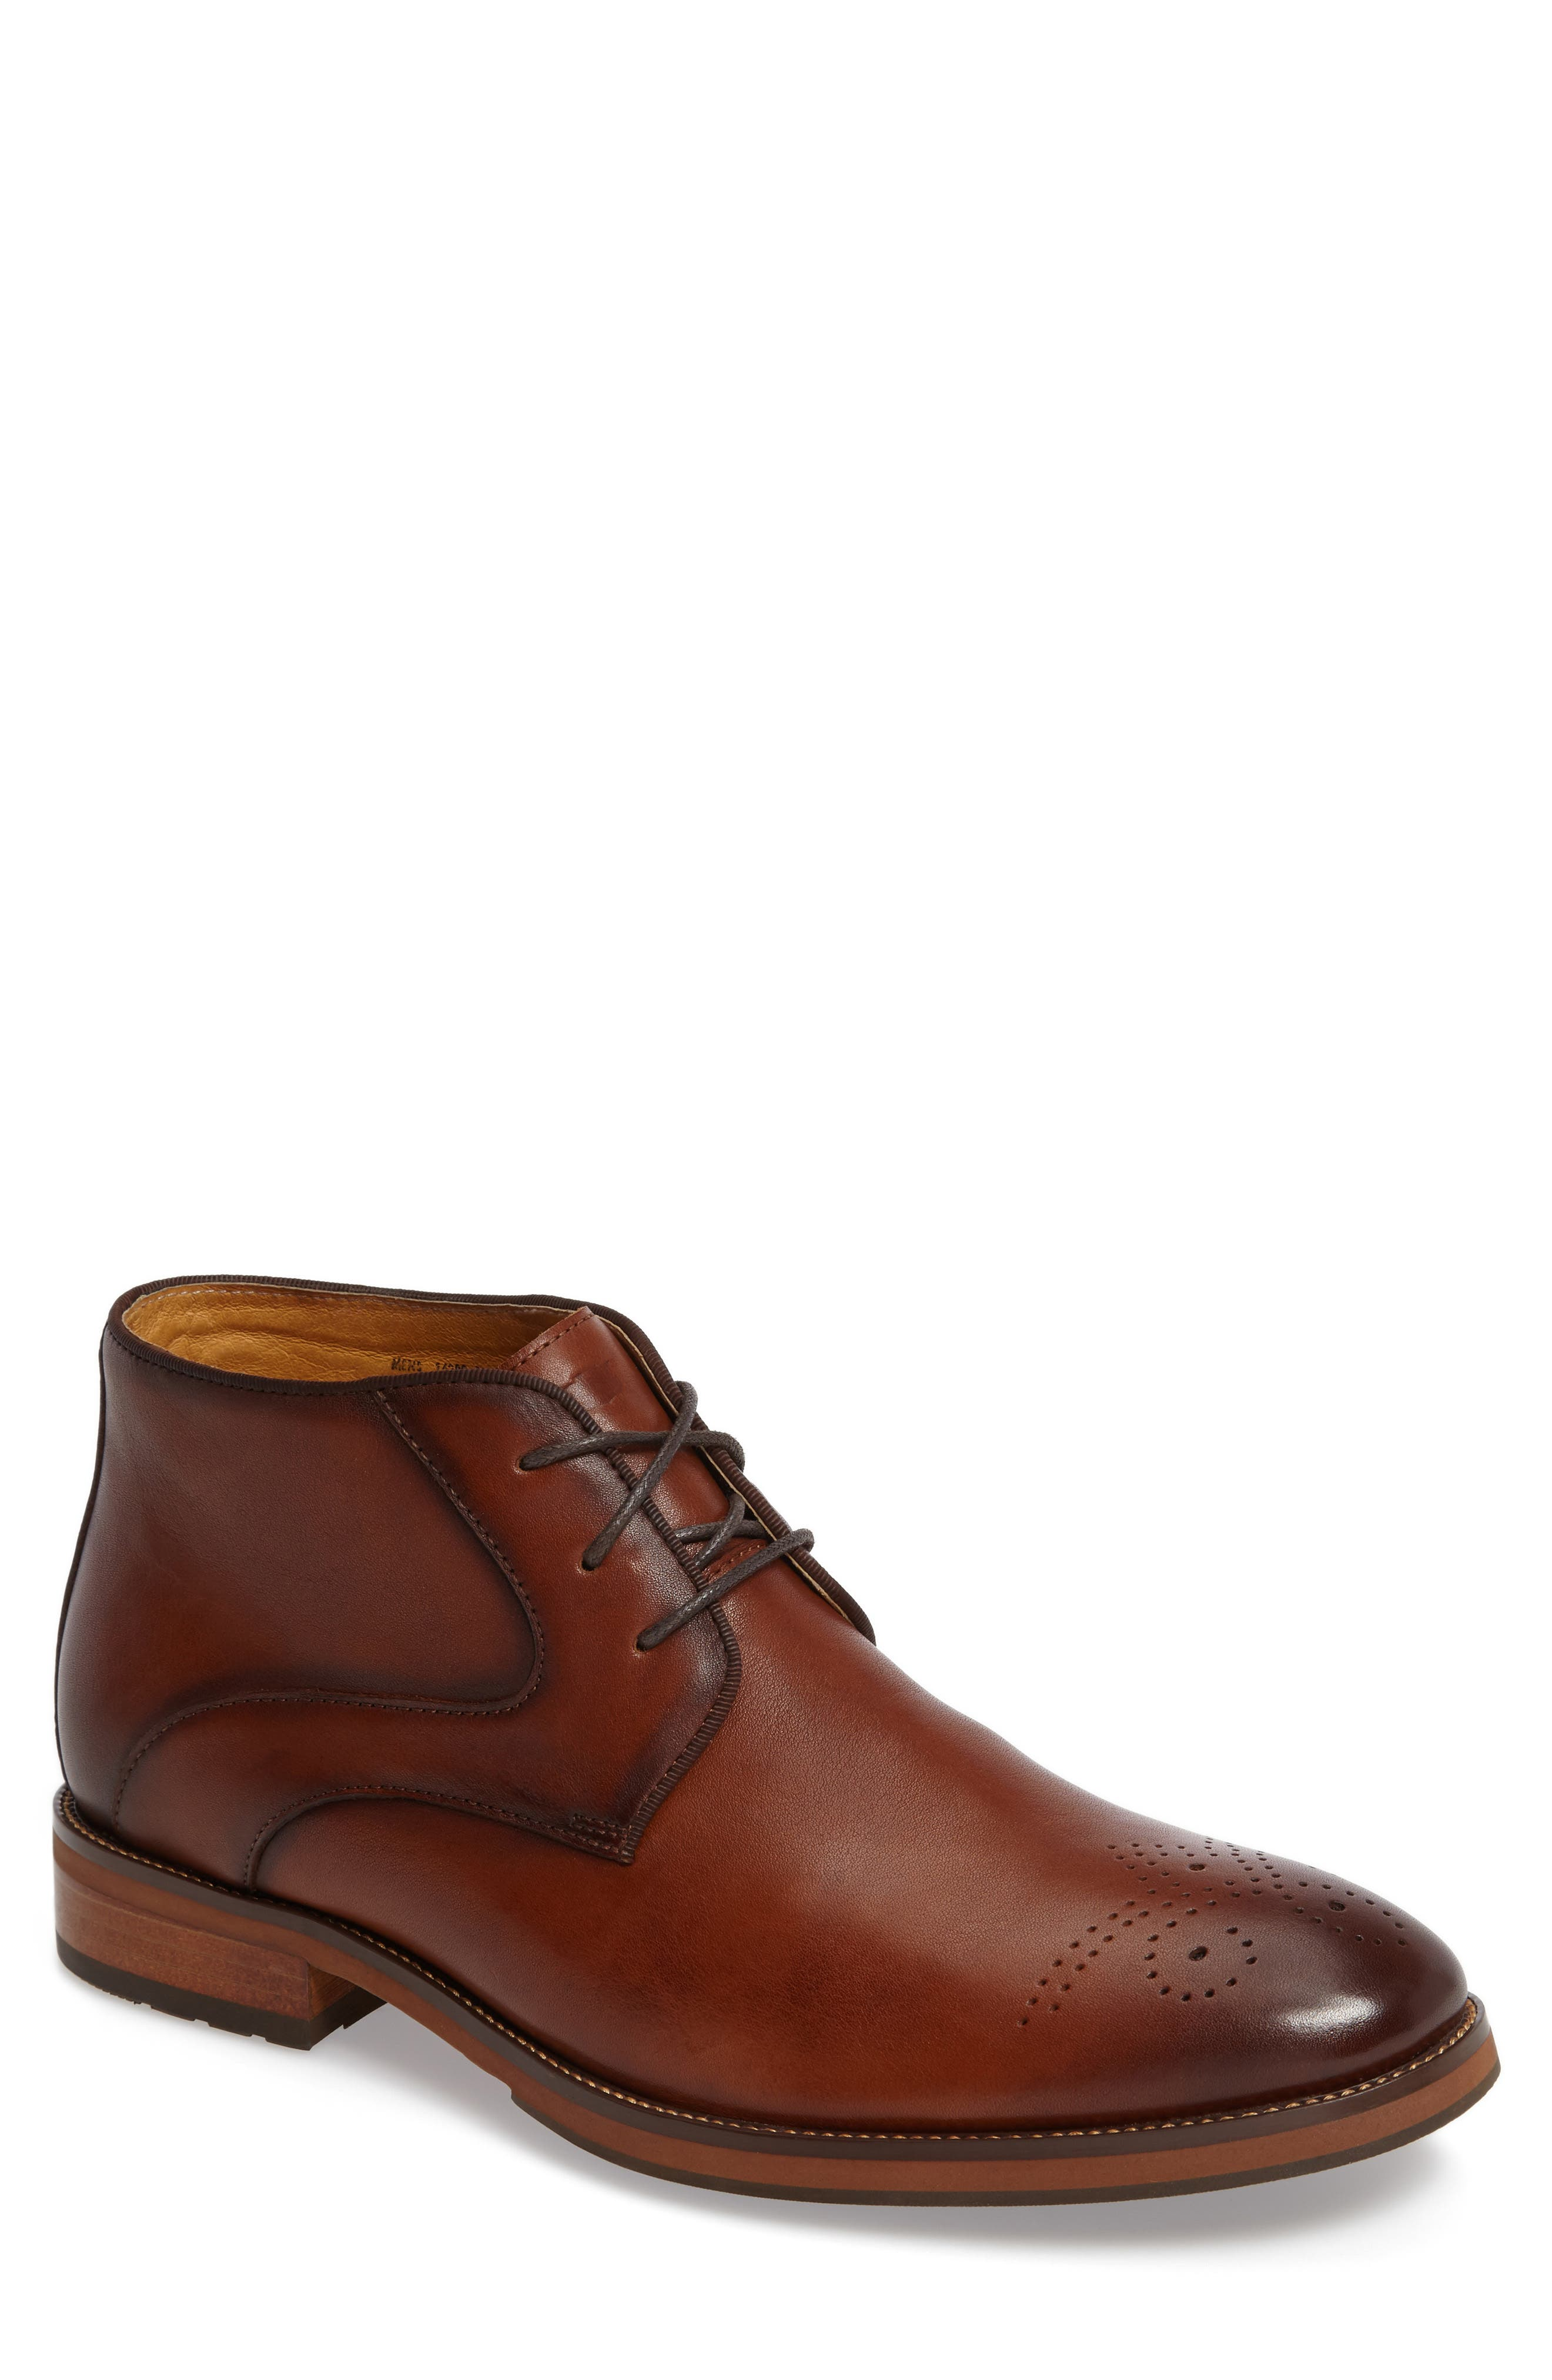 florsheim shoes 16 4e boots for women